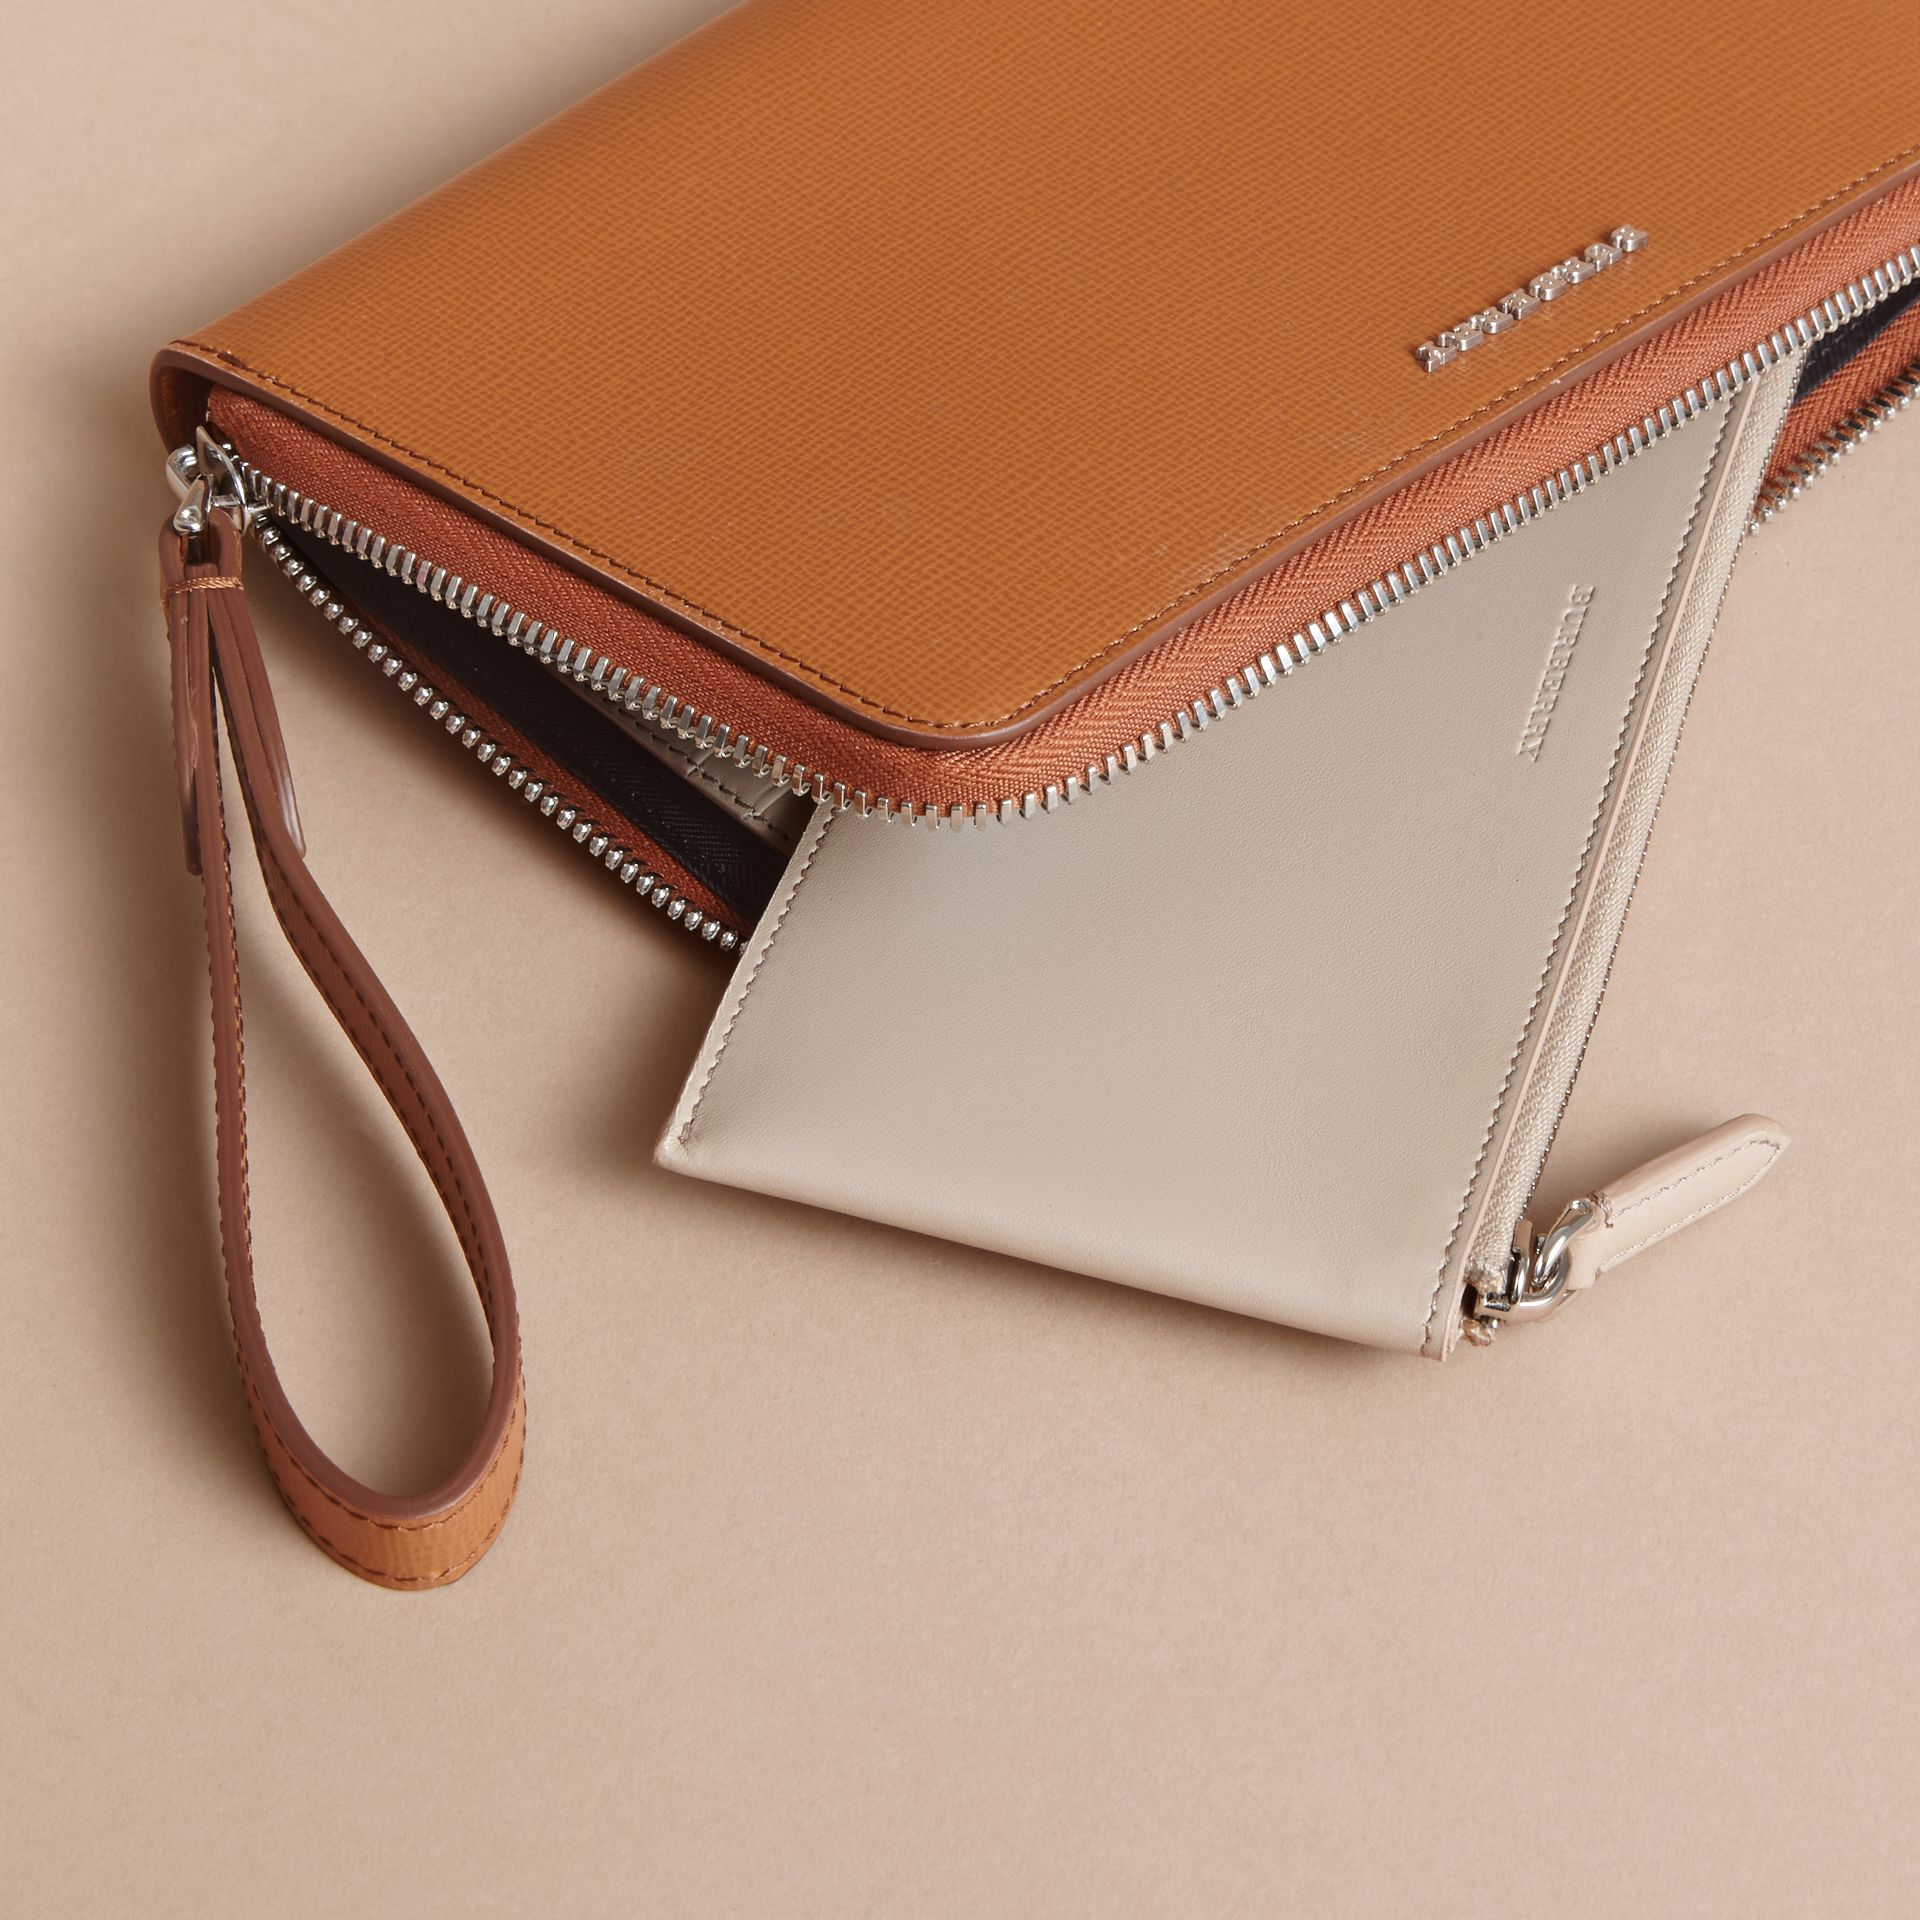 London Leather Travel Wallet in Tan | Burberry - gallery image 5